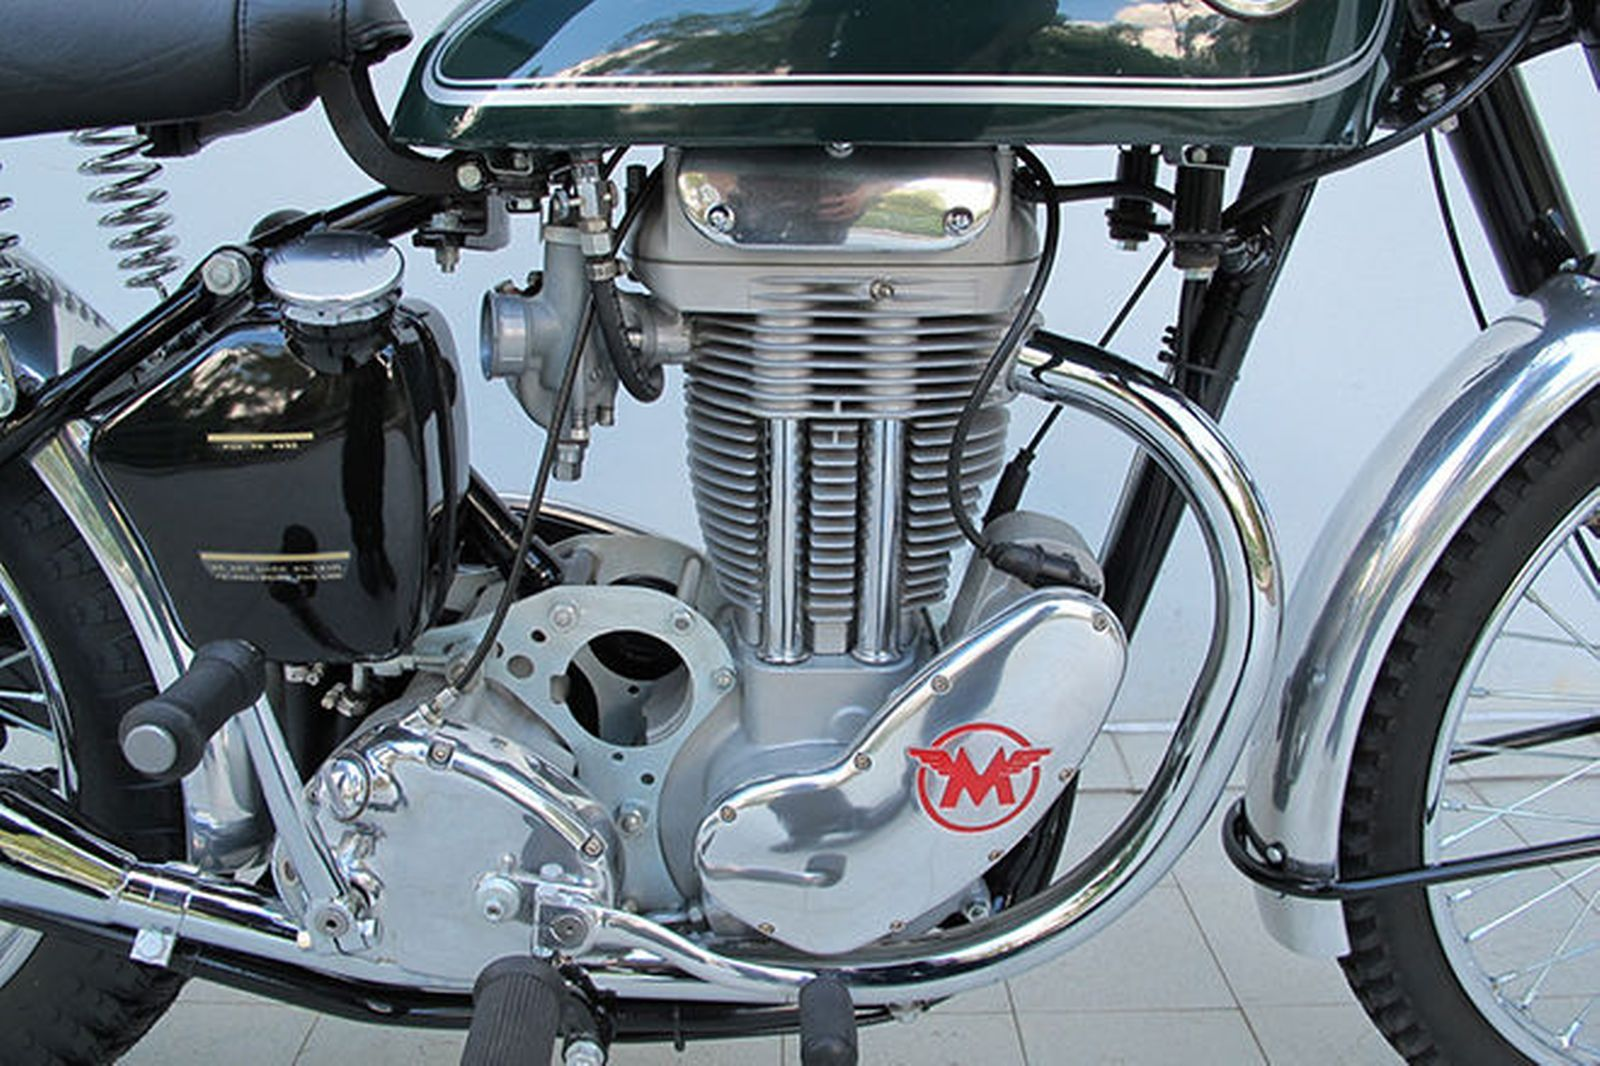 Matchless g 11 csr for sale 1958 on car and classic uk c544589 - 1949 Matchless 500 Motorcycles Pinterest Motorbikes Dream Garage And Vintage Motorcycles